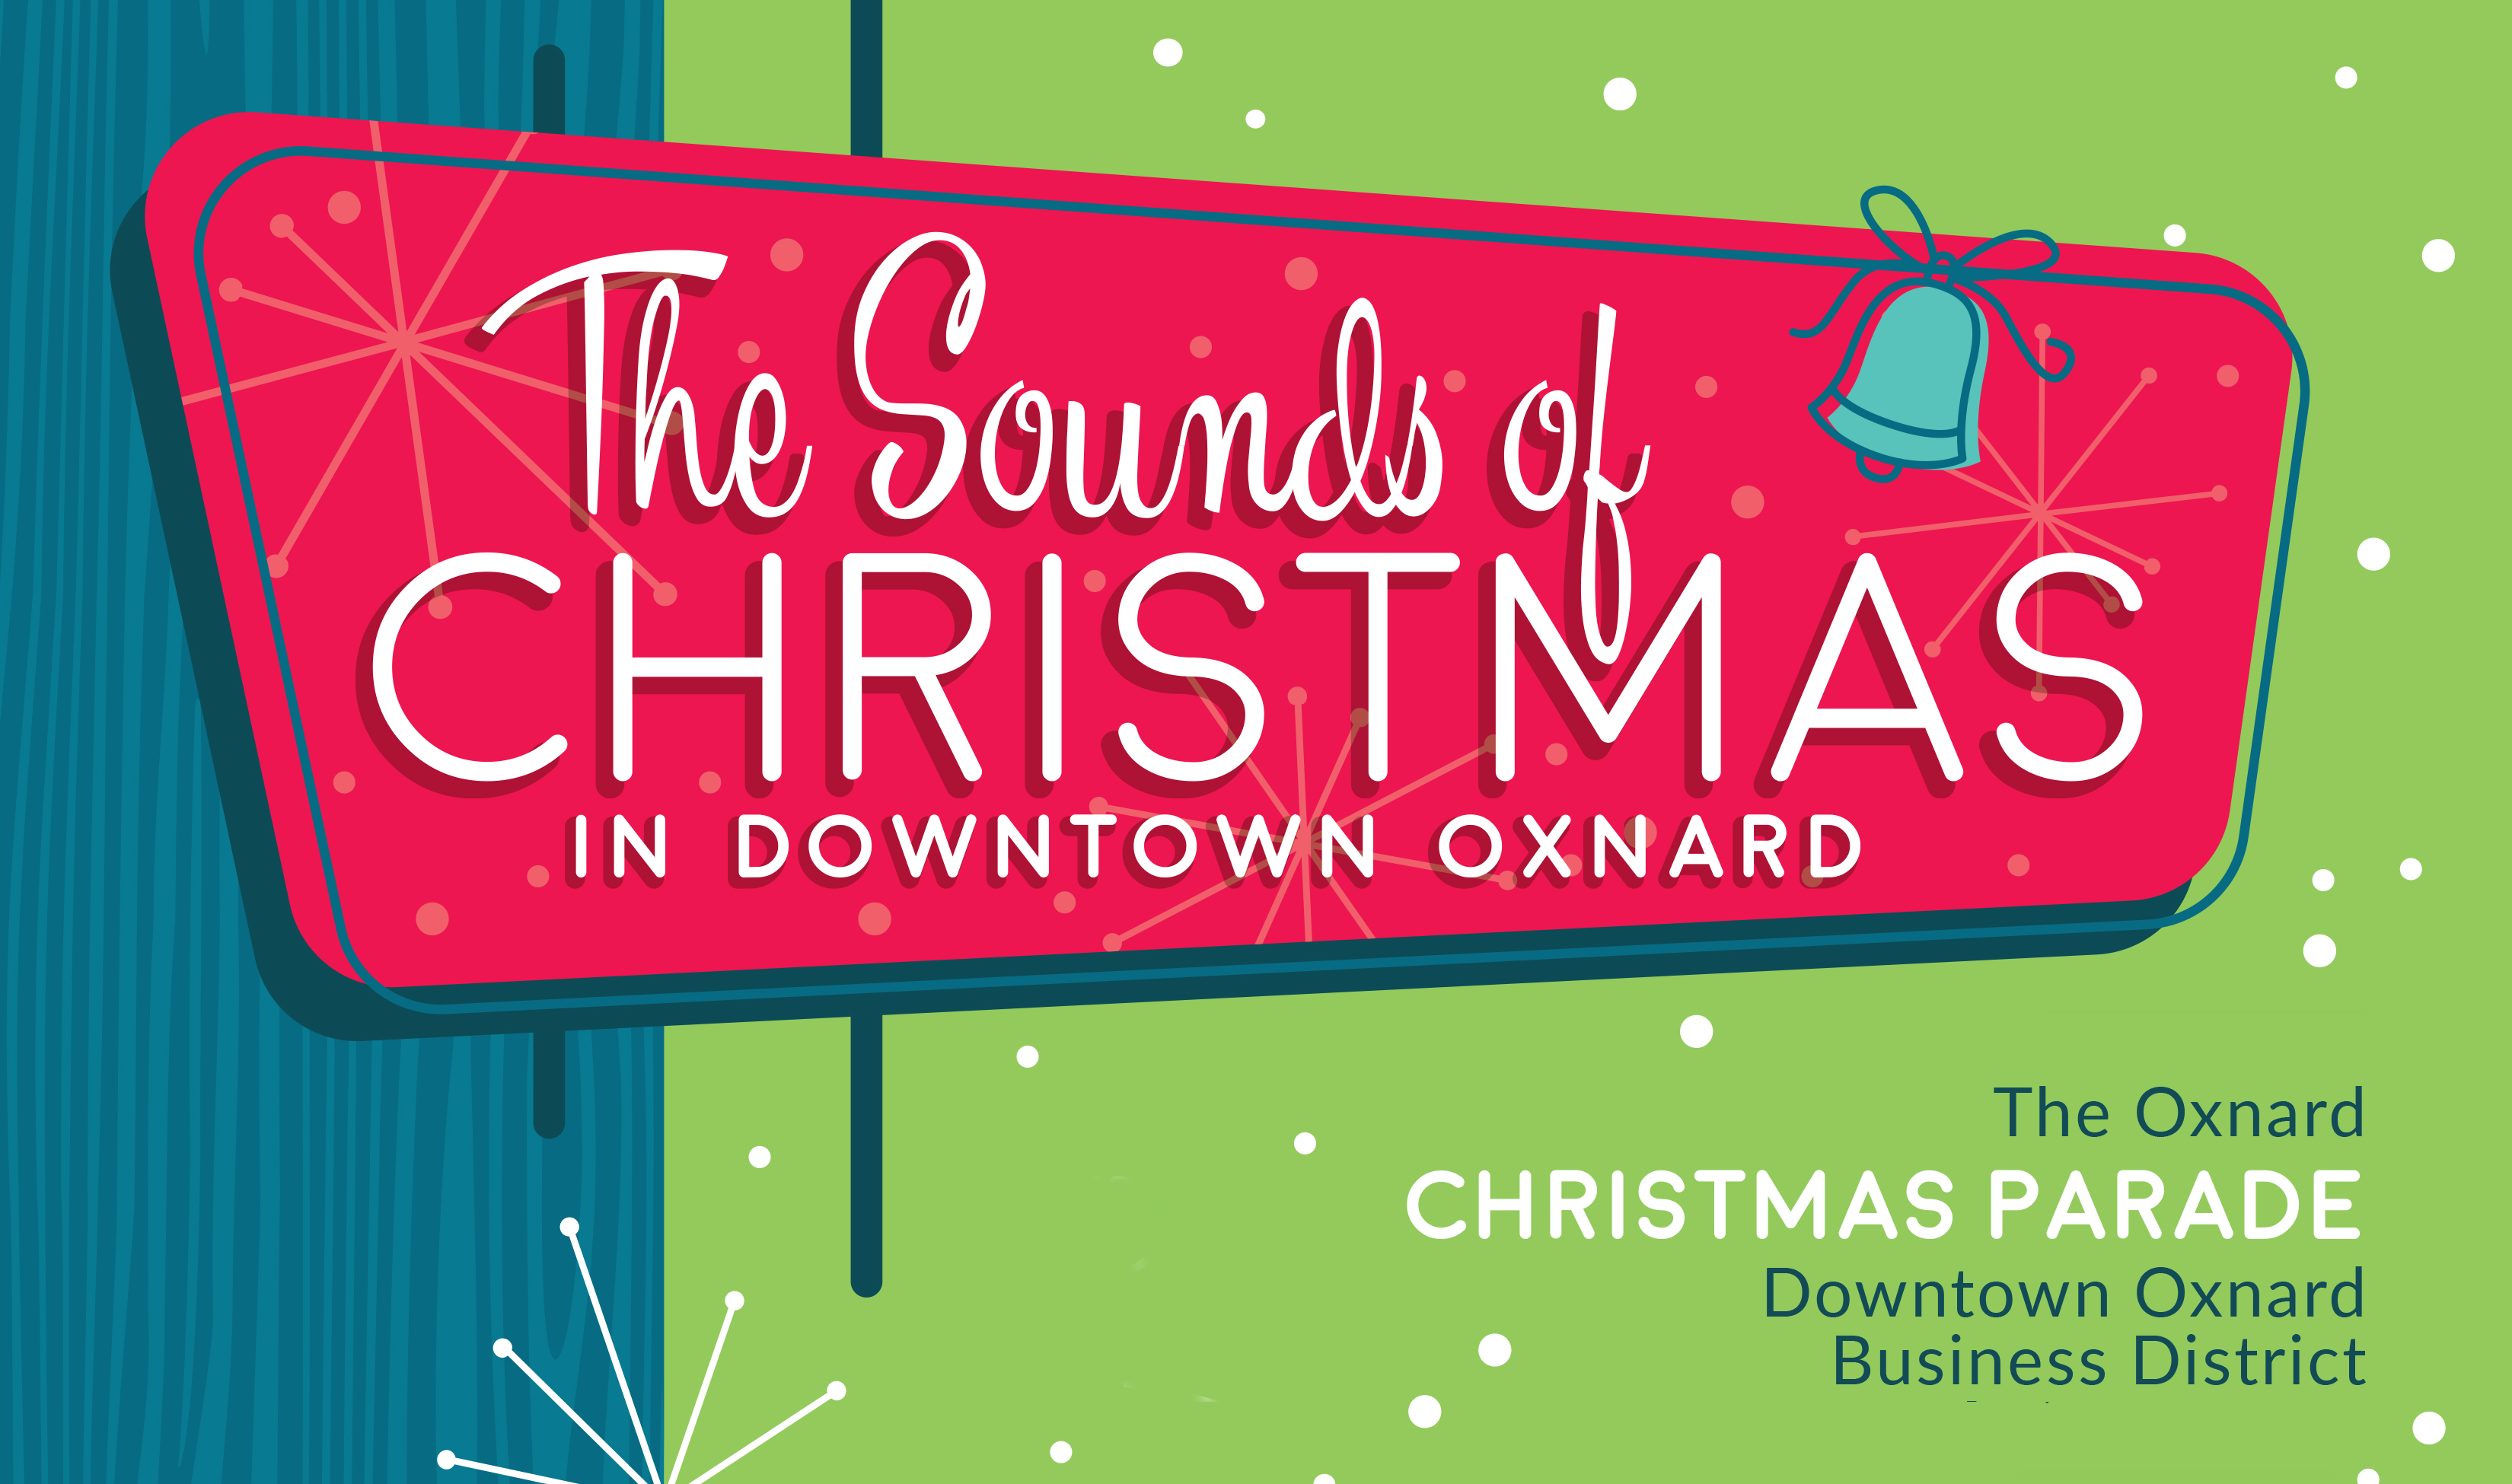 Oxnard Christmas Parade – The Sounds of Christmas